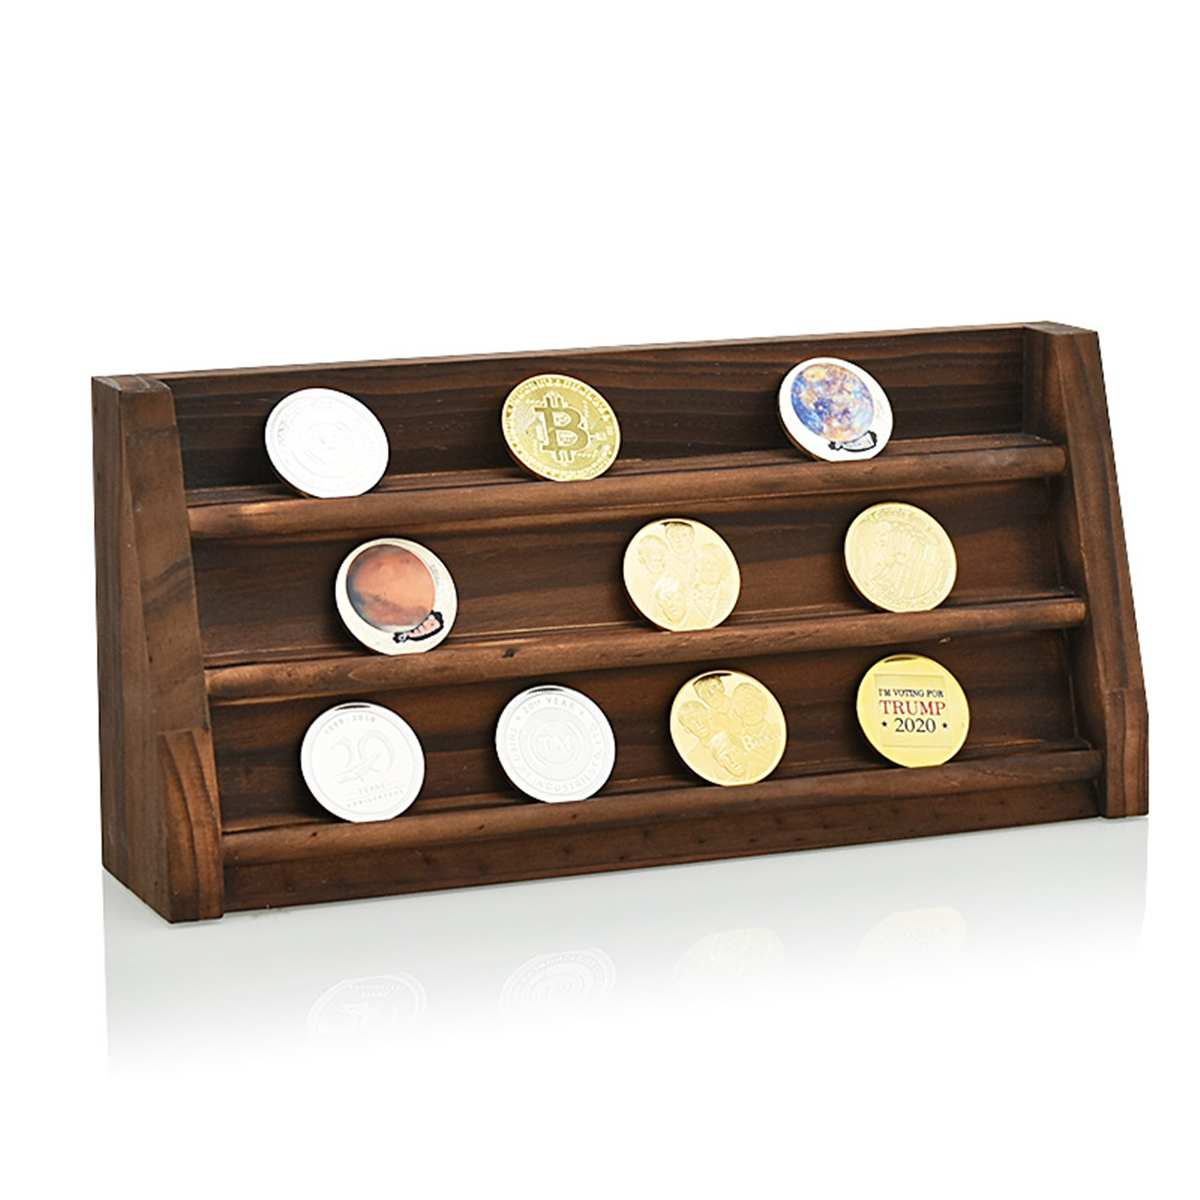 2 Styles Coin Display Stand Coin Case Collector Wooden Coin Storage Shelves Collectible Coins Holder Display Album Coin Case